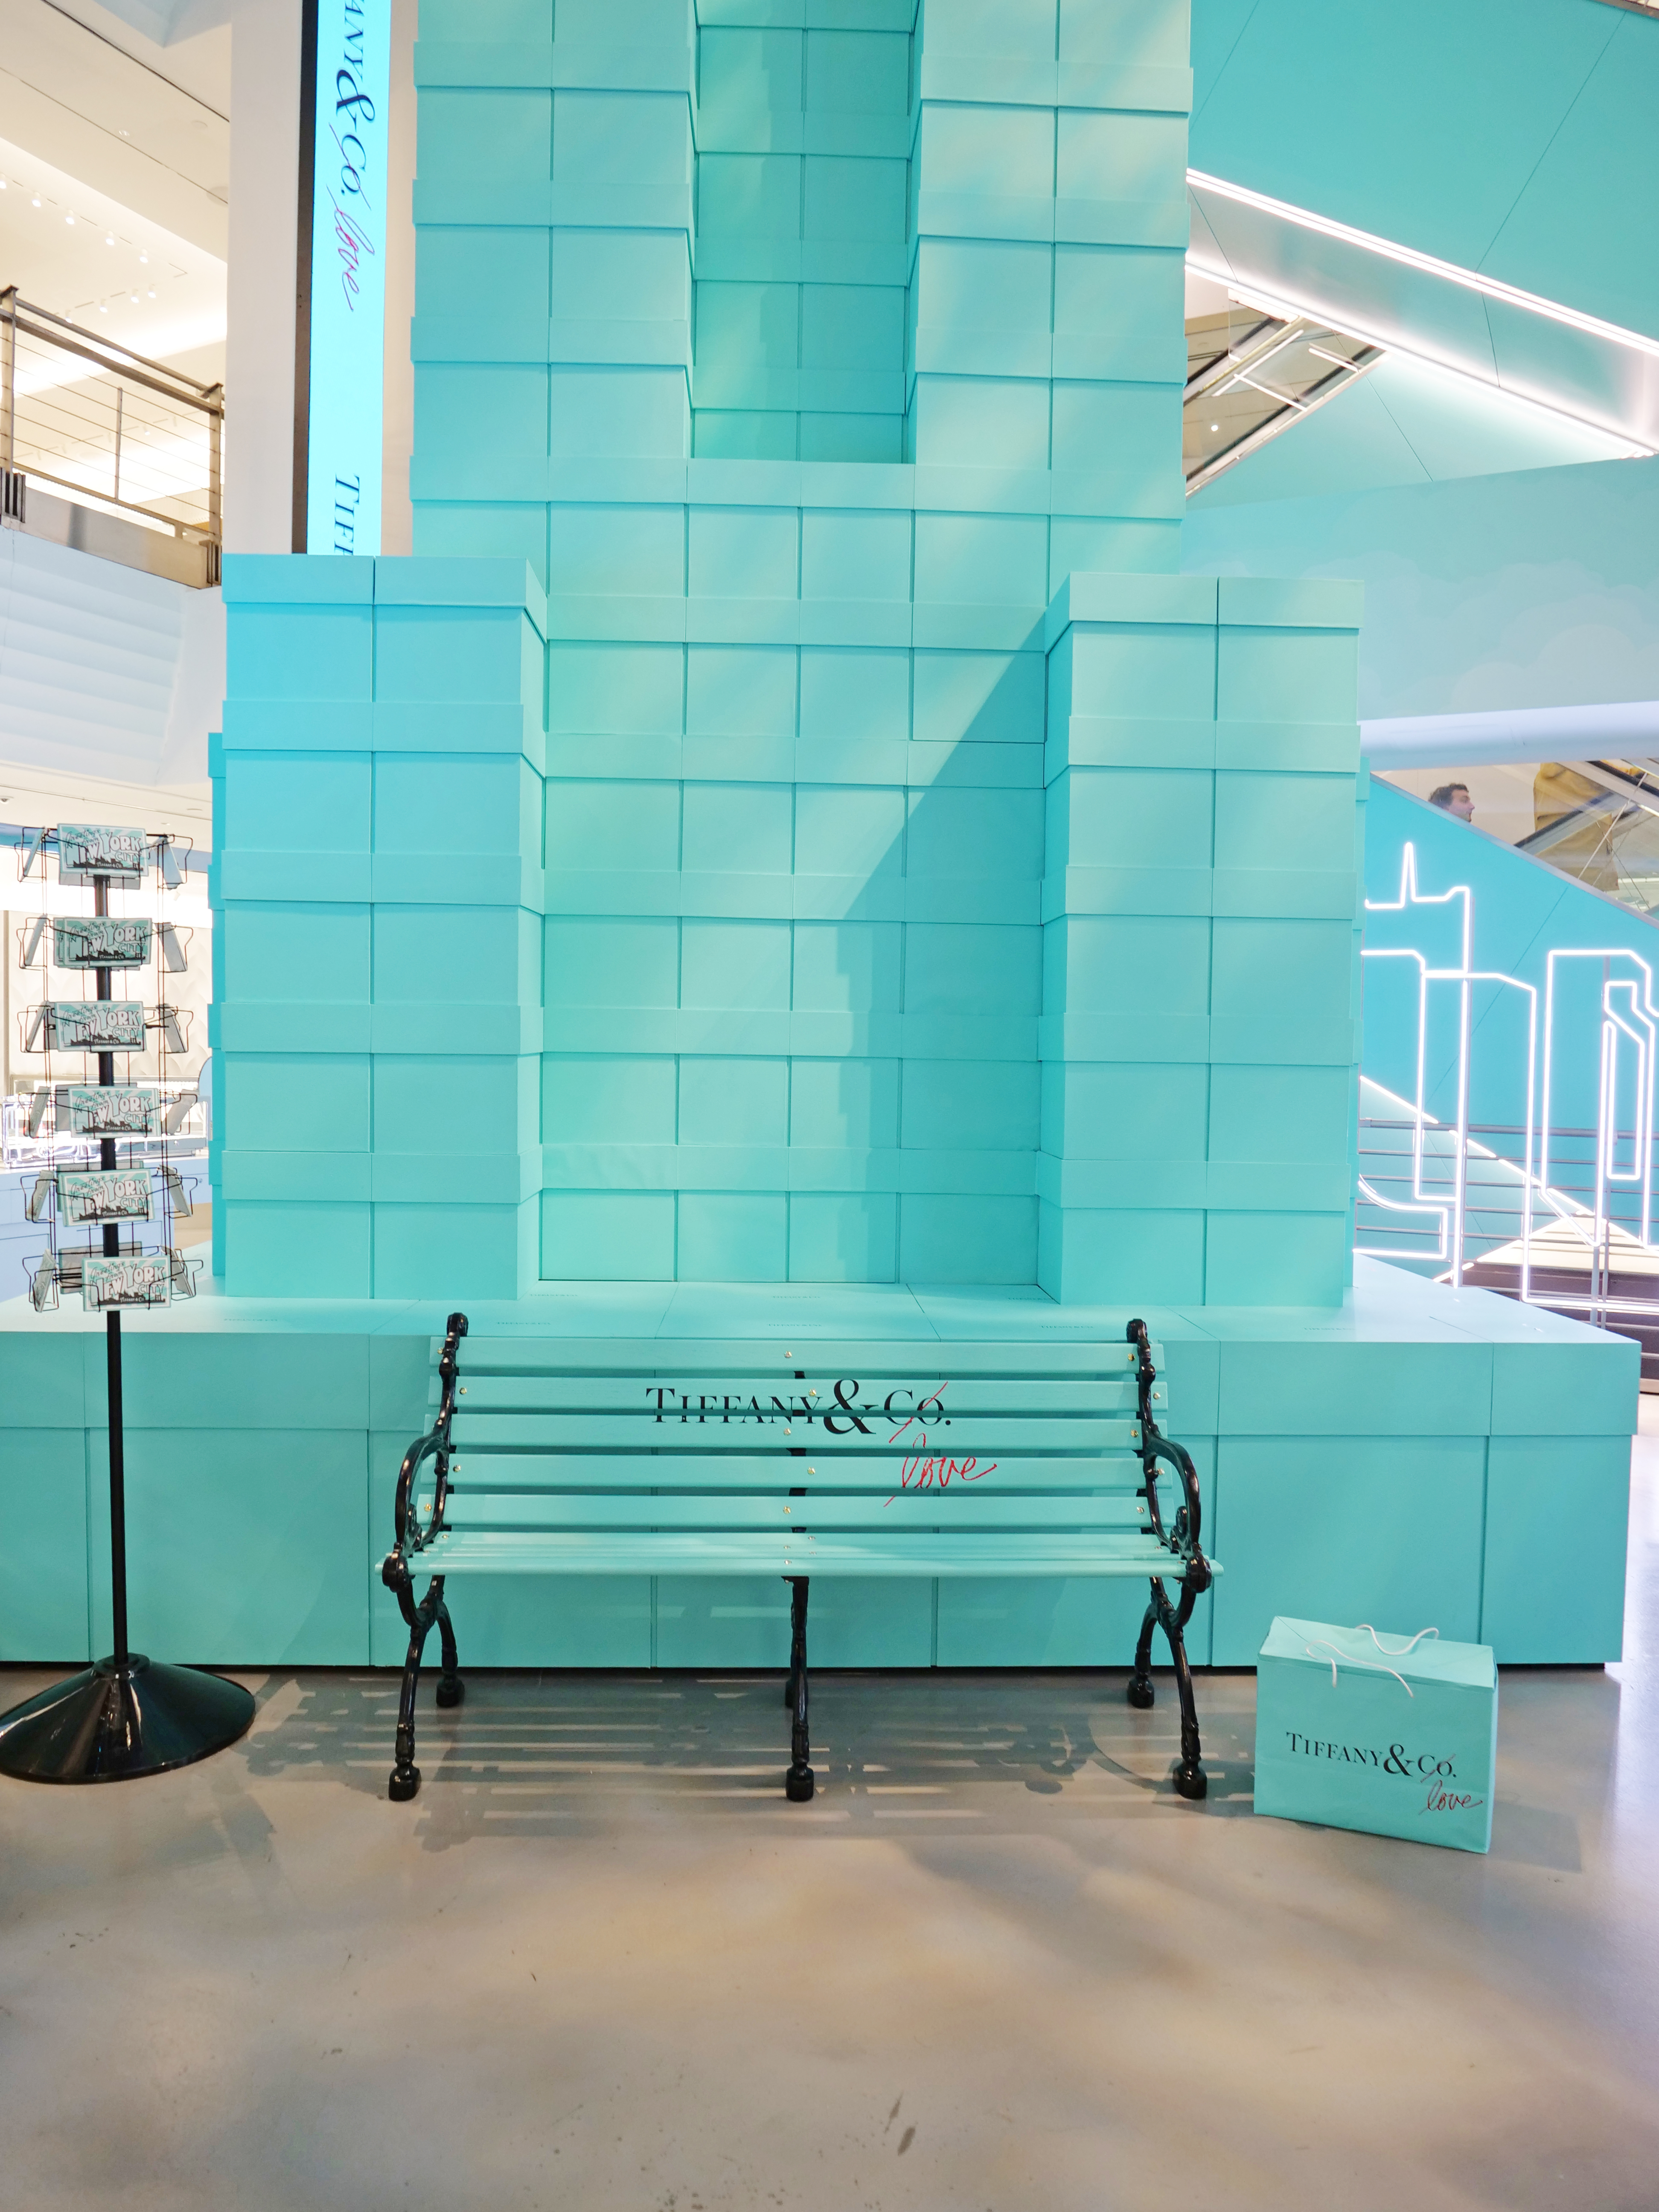 NYC Tiffany and Co Valentine's Day Subway Flower Installation park bench postcards Empire State Building